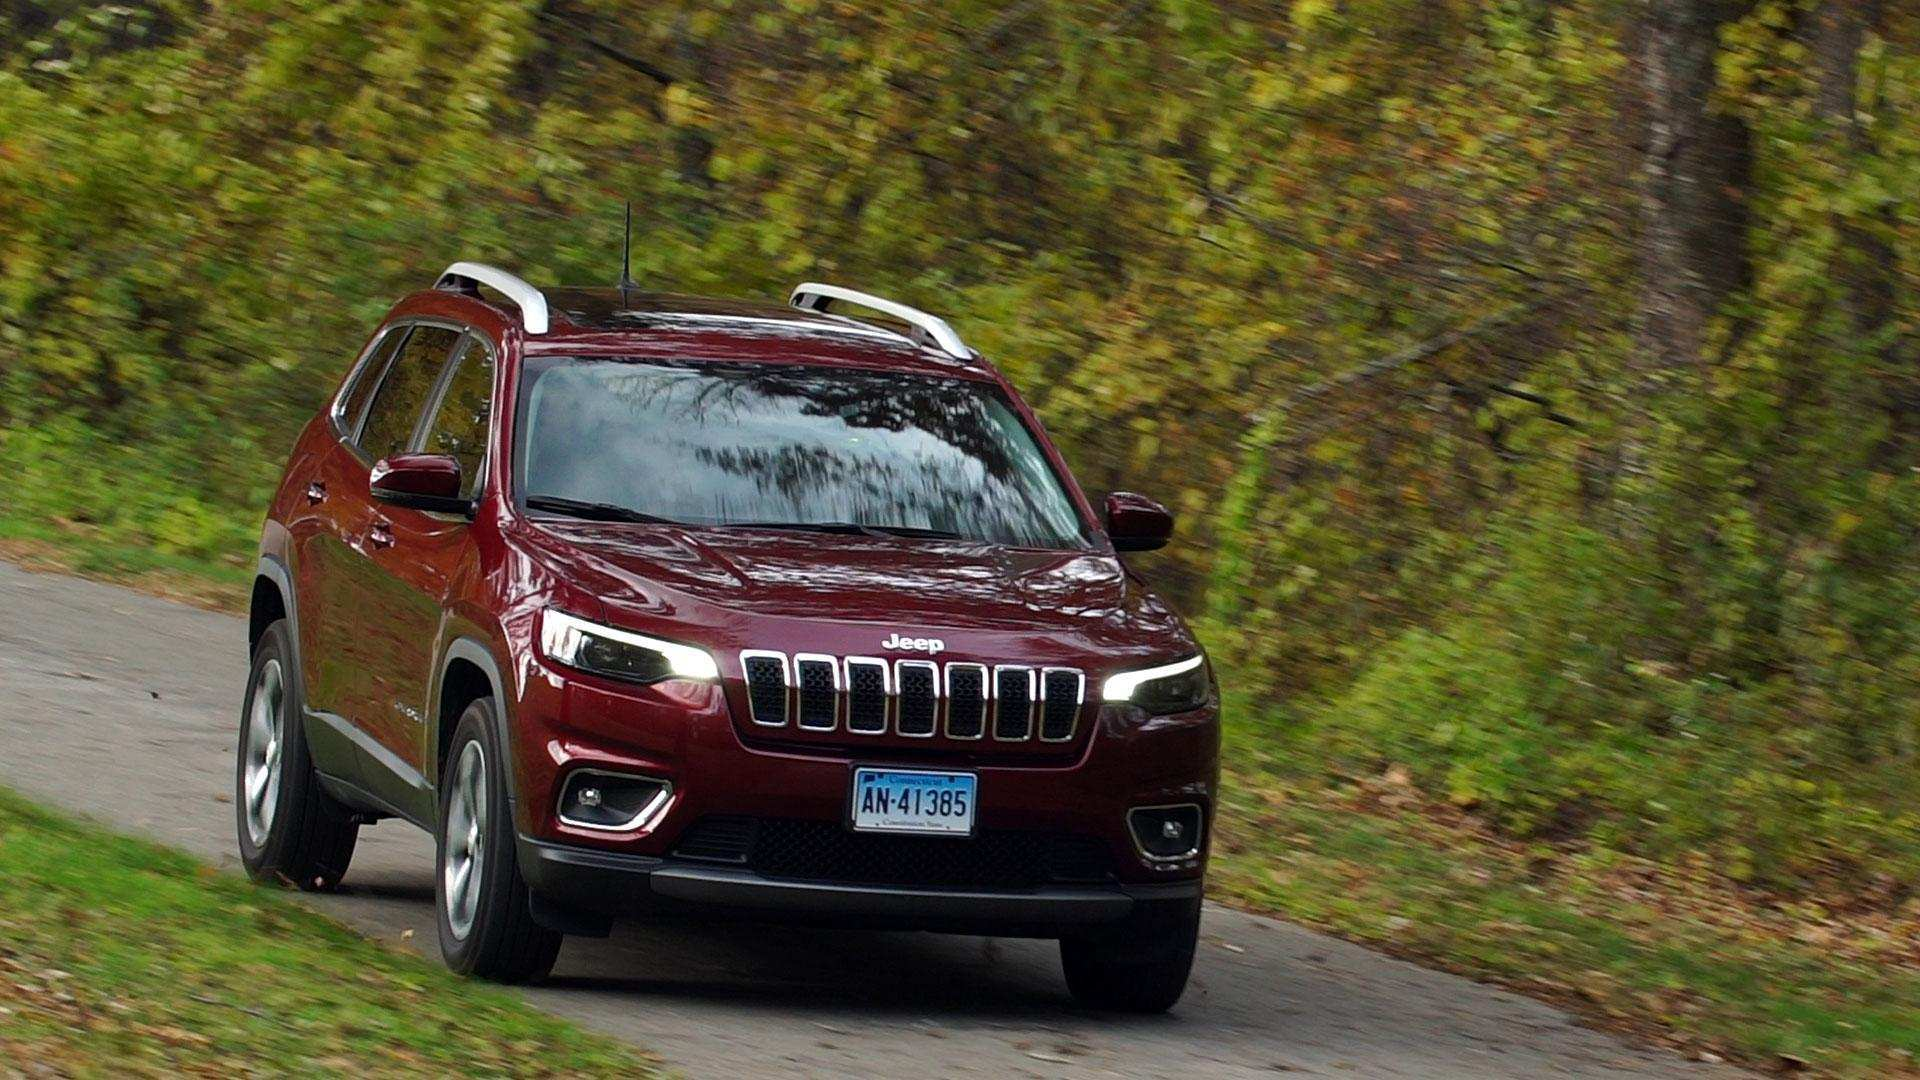 65 Best Review Jeep Turbo Diesel 2019 Interior Price with Jeep Turbo Diesel 2019 Interior